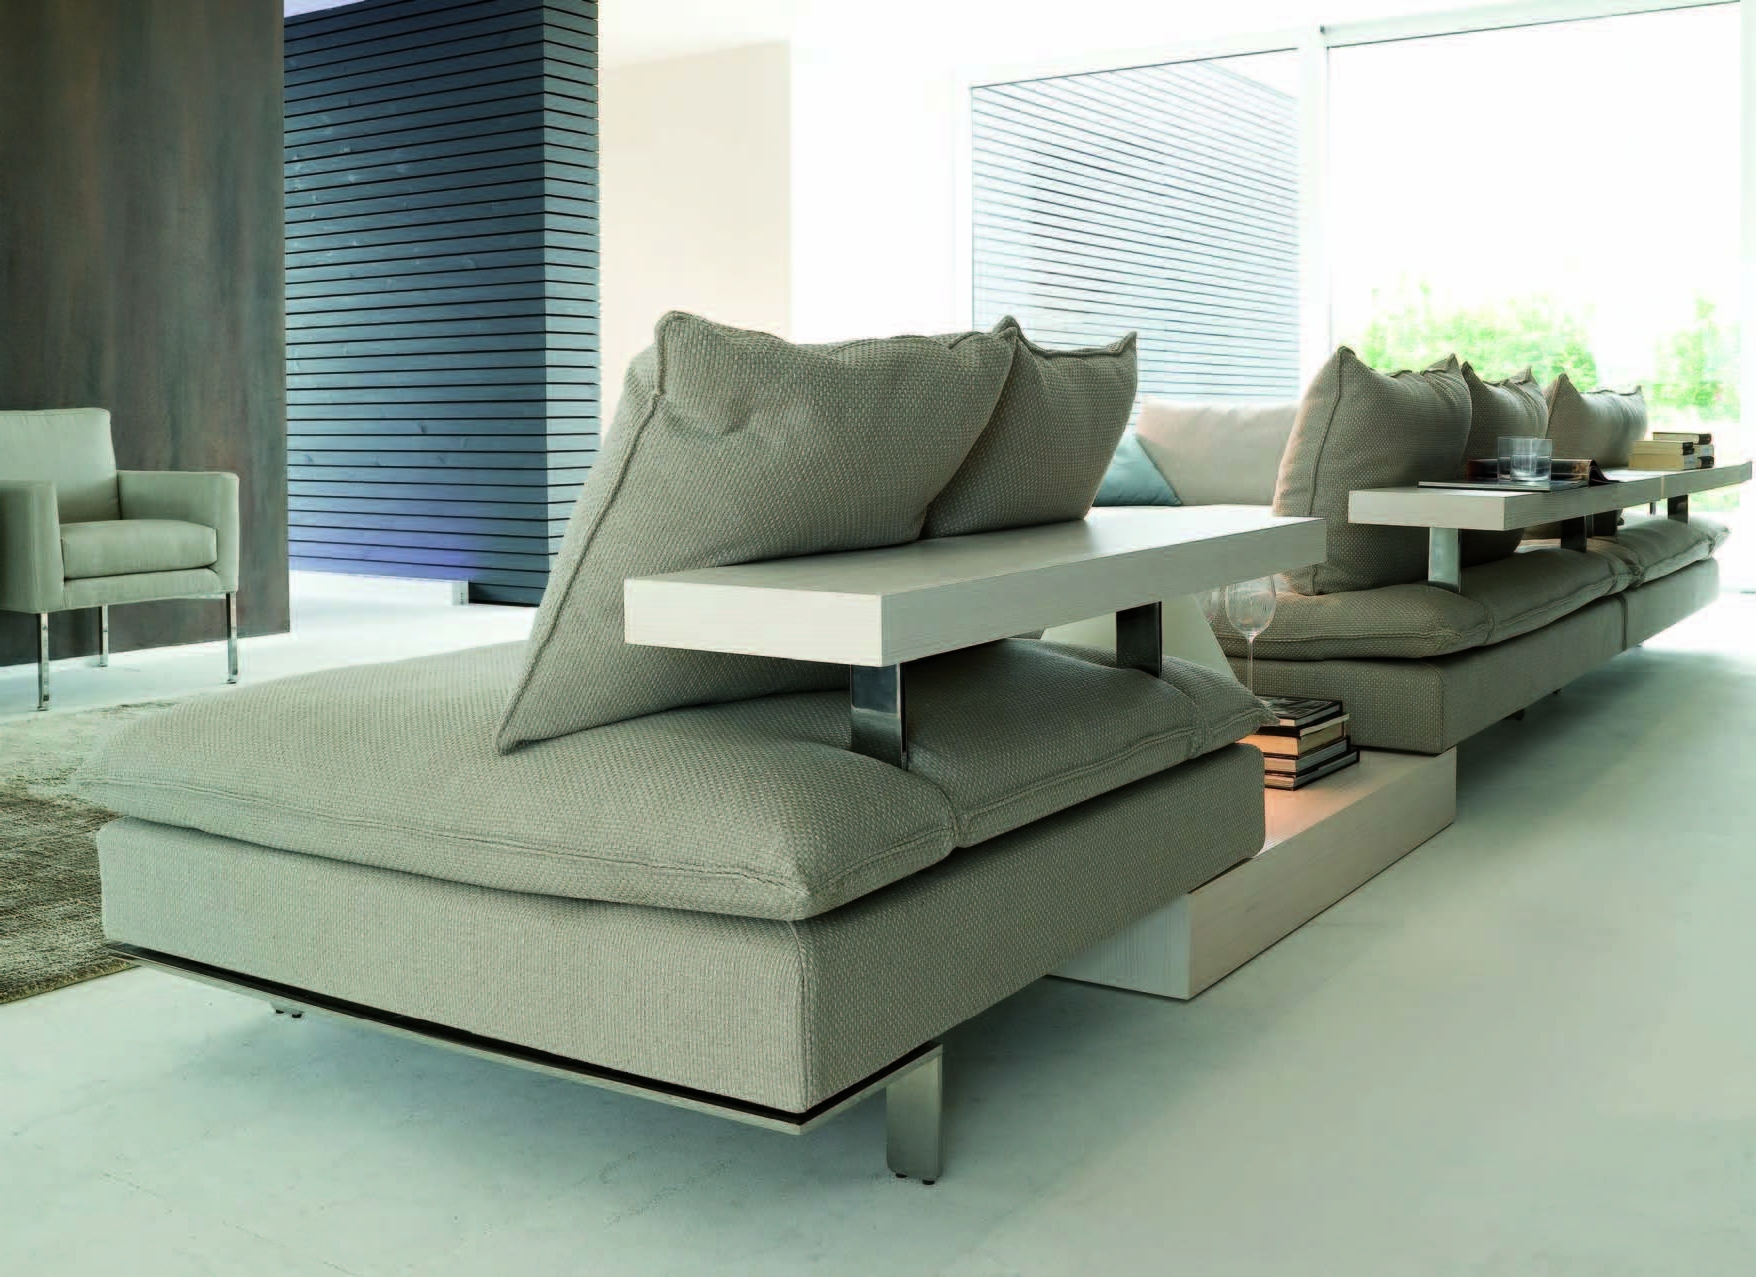 Newest Italian Furniture,modern Furniture,contemporary Furniture – Modern With Regard To Bedroom Sofas And Chairs (View 16 of 20)